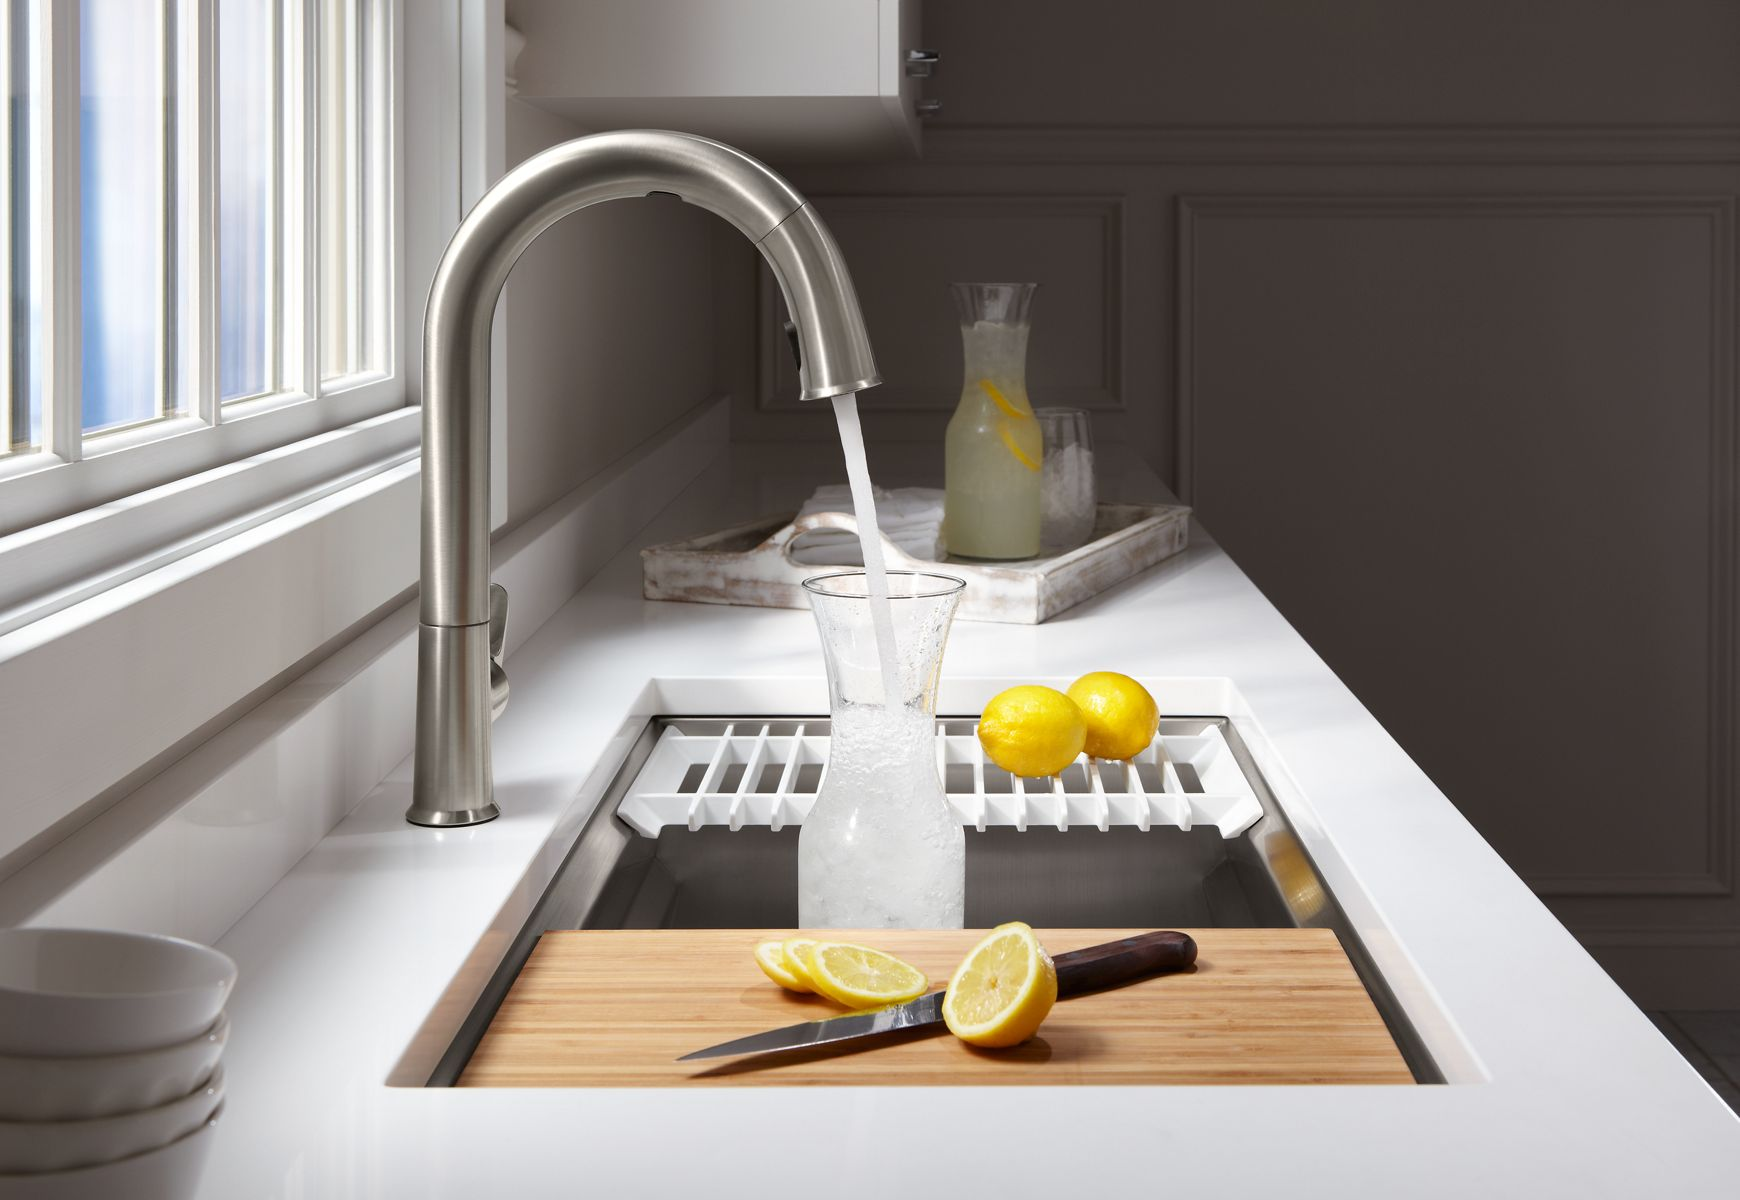 kitchen sink faucets gutter sensate touchless faucet with kohler konnect stainless steel rack 32 3 4 x 16 for k 5283 strive